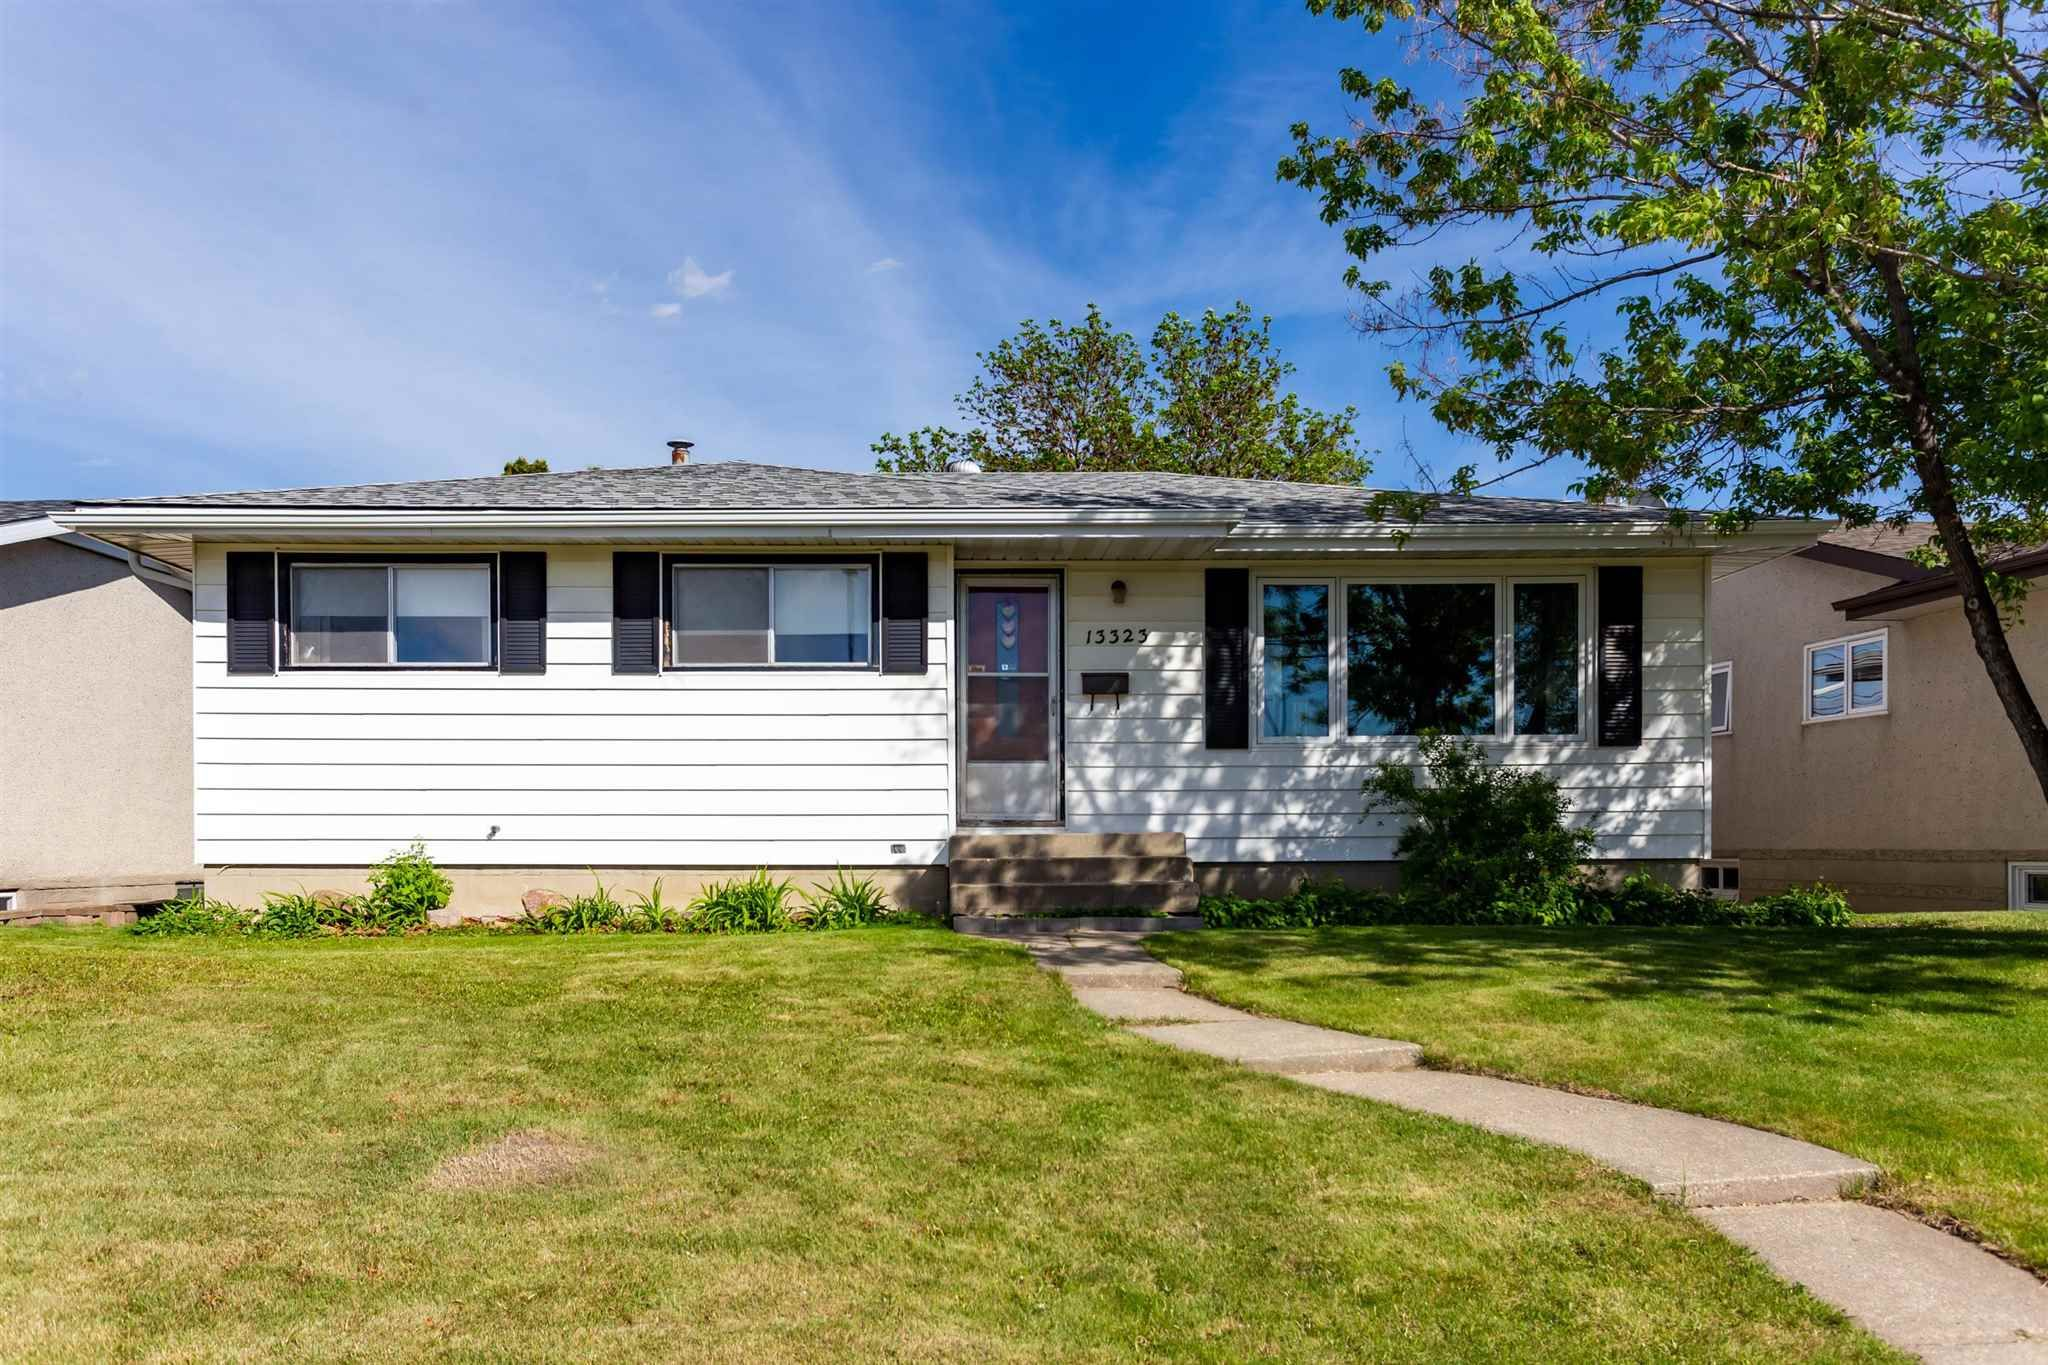 Main Photo: 13323 Delwood Road in Edmonton: Zone 02 House for sale : MLS®# E4247679